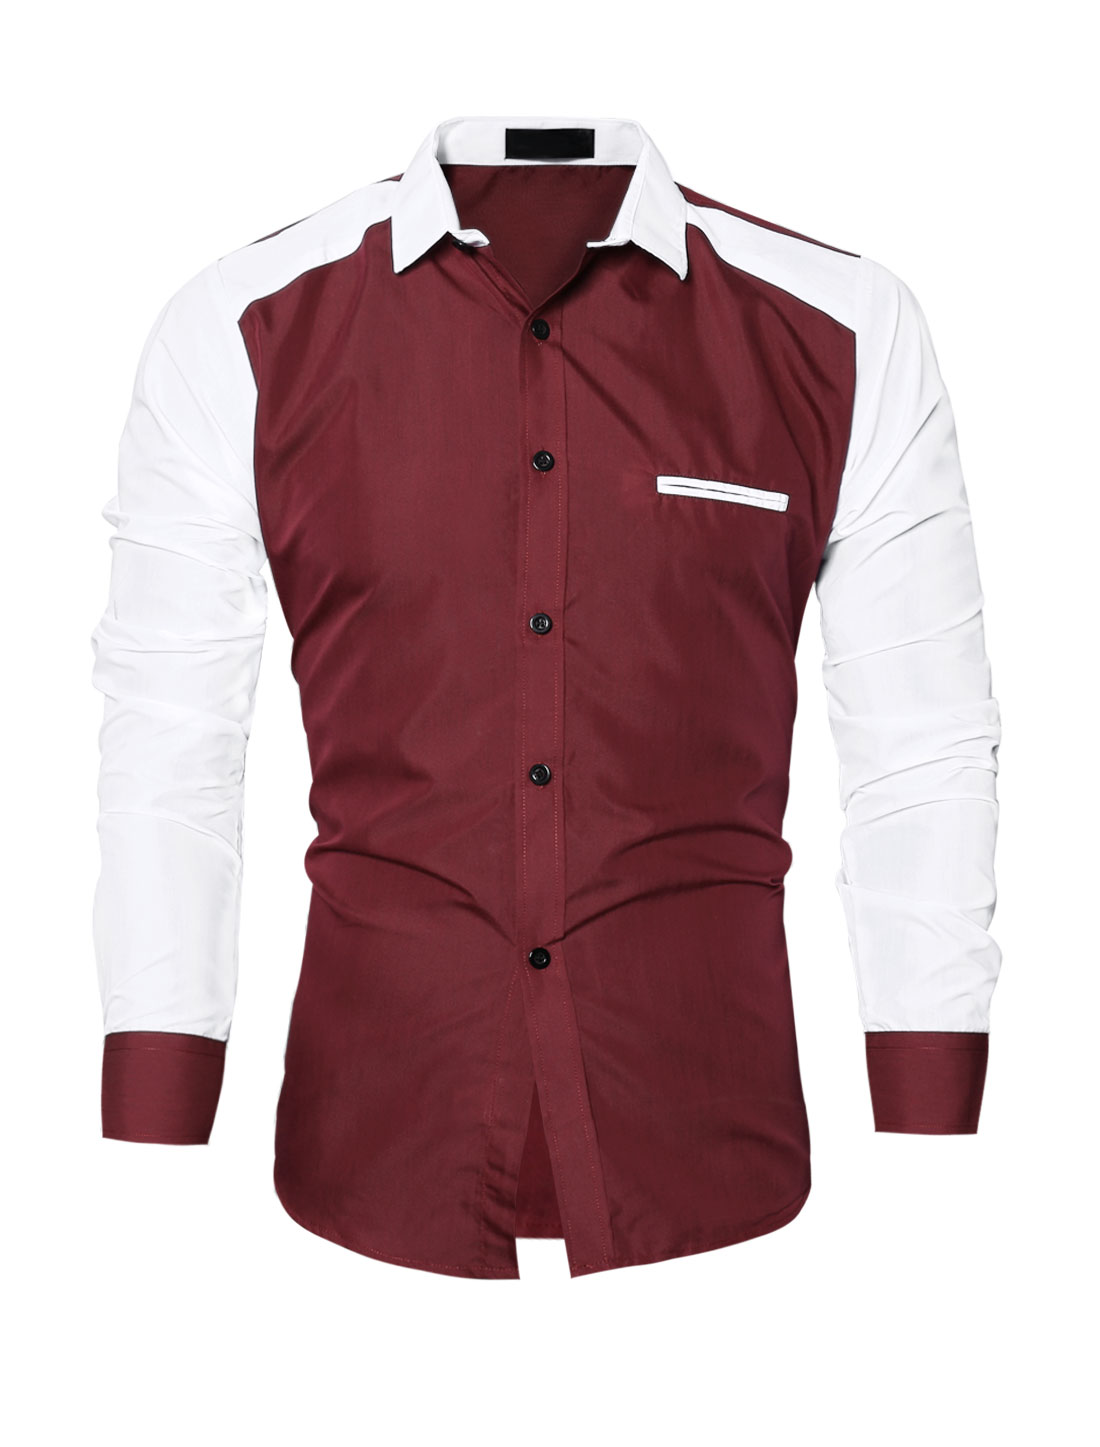 Men Collared Contrast Color Slim Fit Shirt Red M